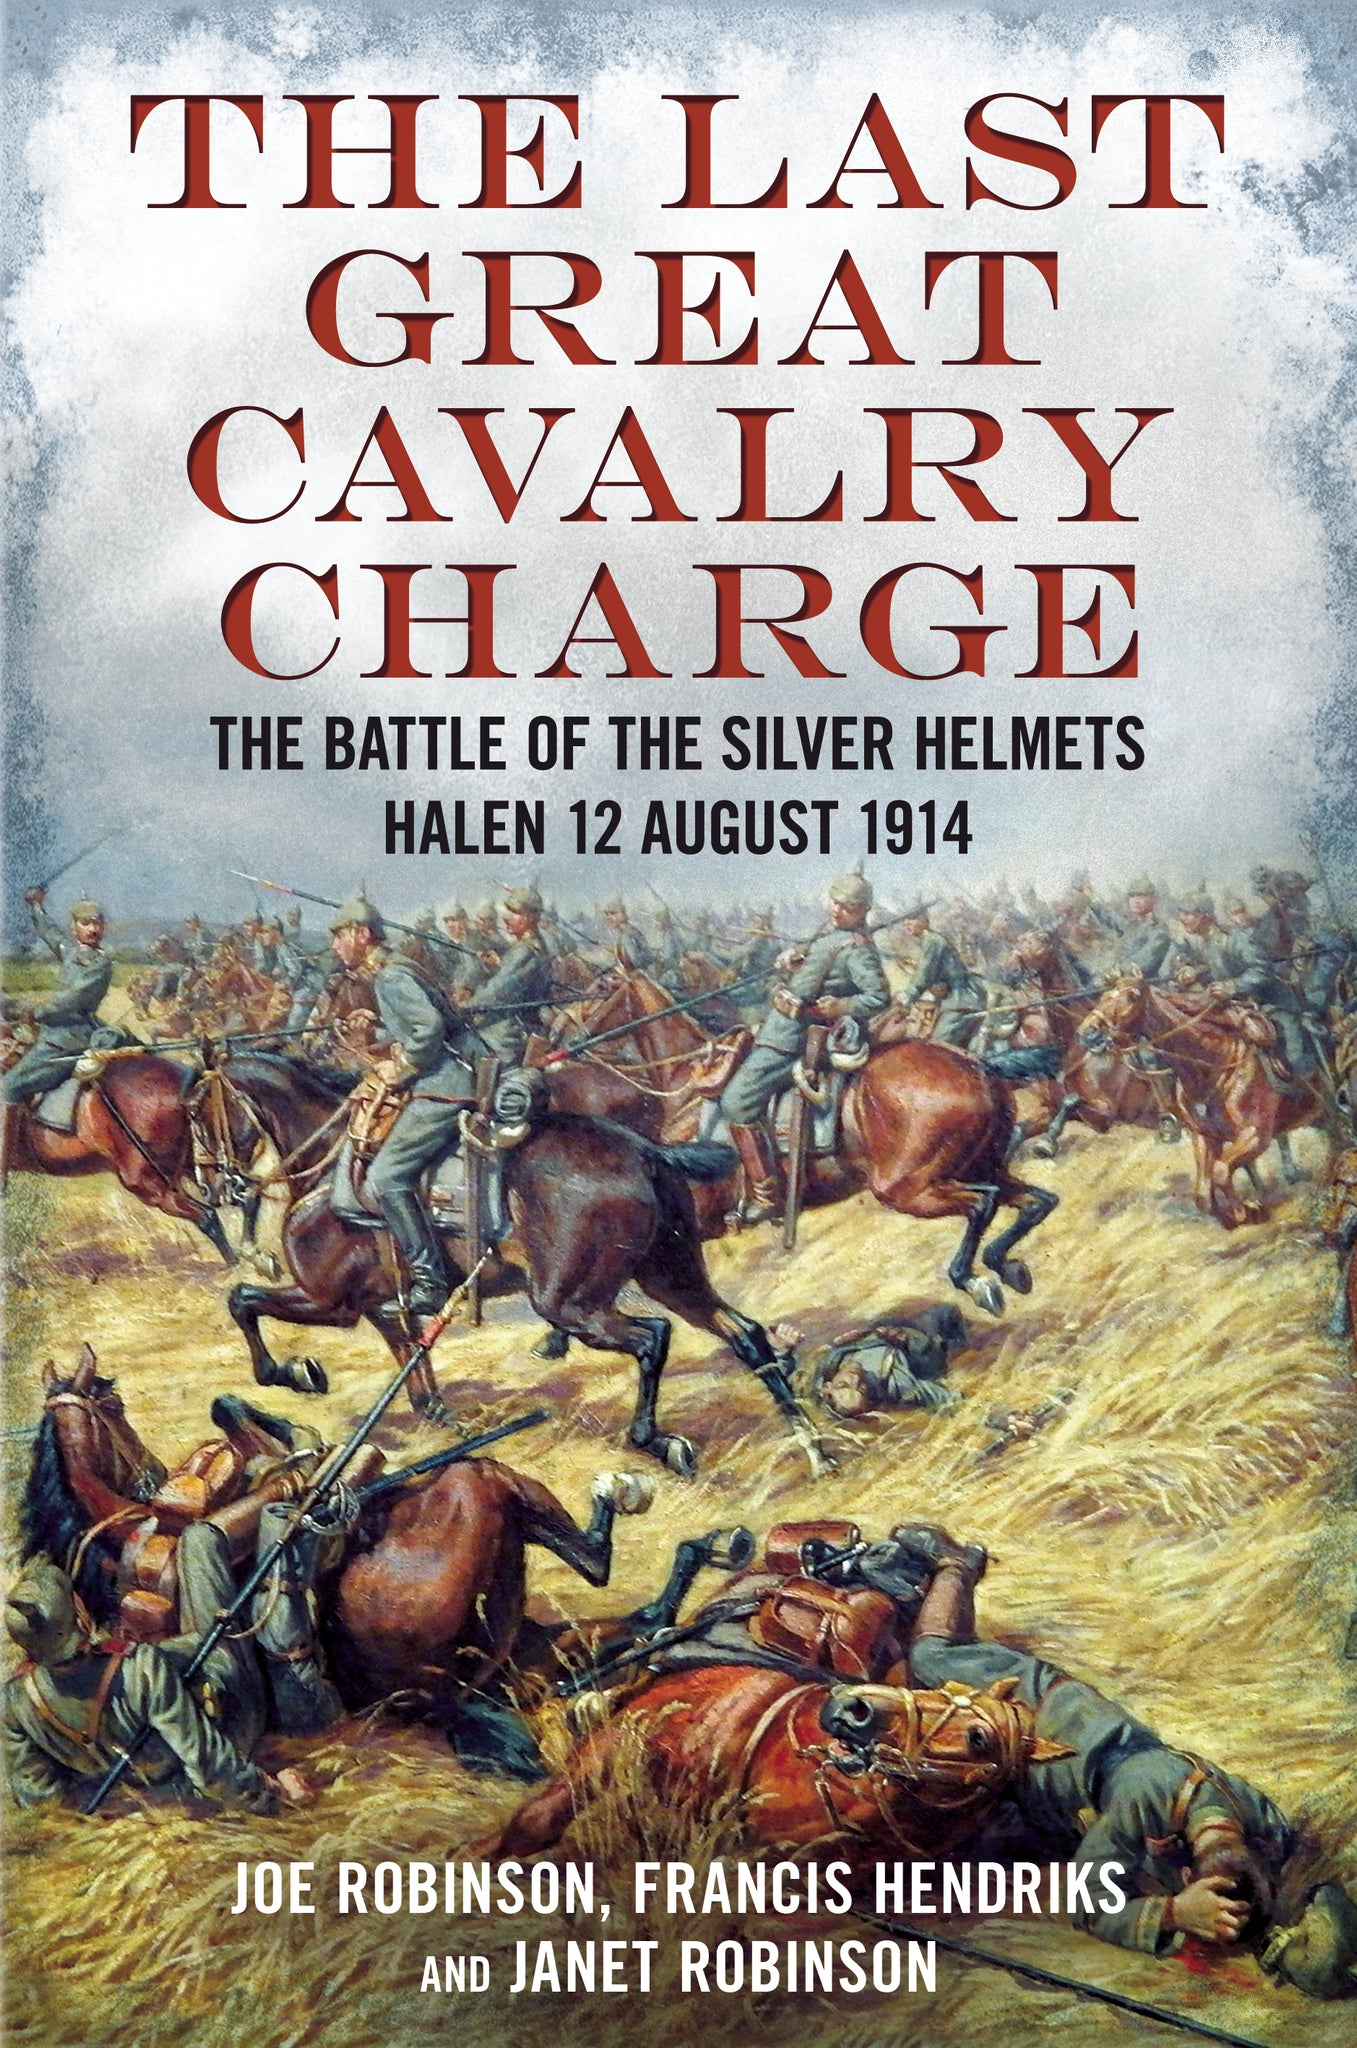 The Last Great Cavalry Charge: The Battle of the Silver Helmets, Halen 12 August 1914